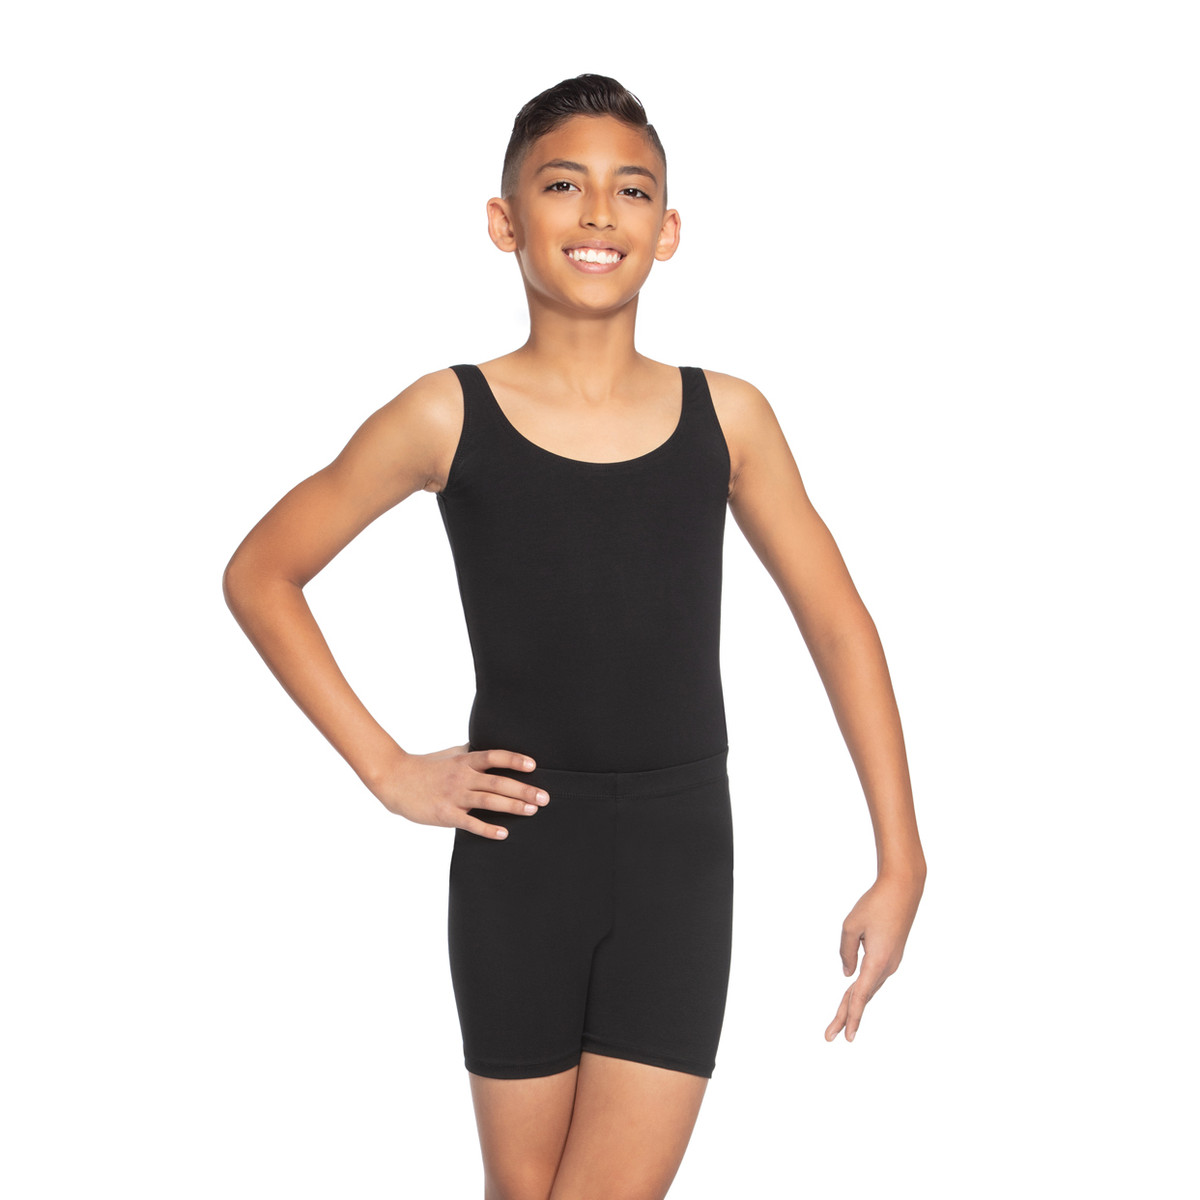 BOY'S & MEN'S COTTON-SPANDEX TANK LEOTARD